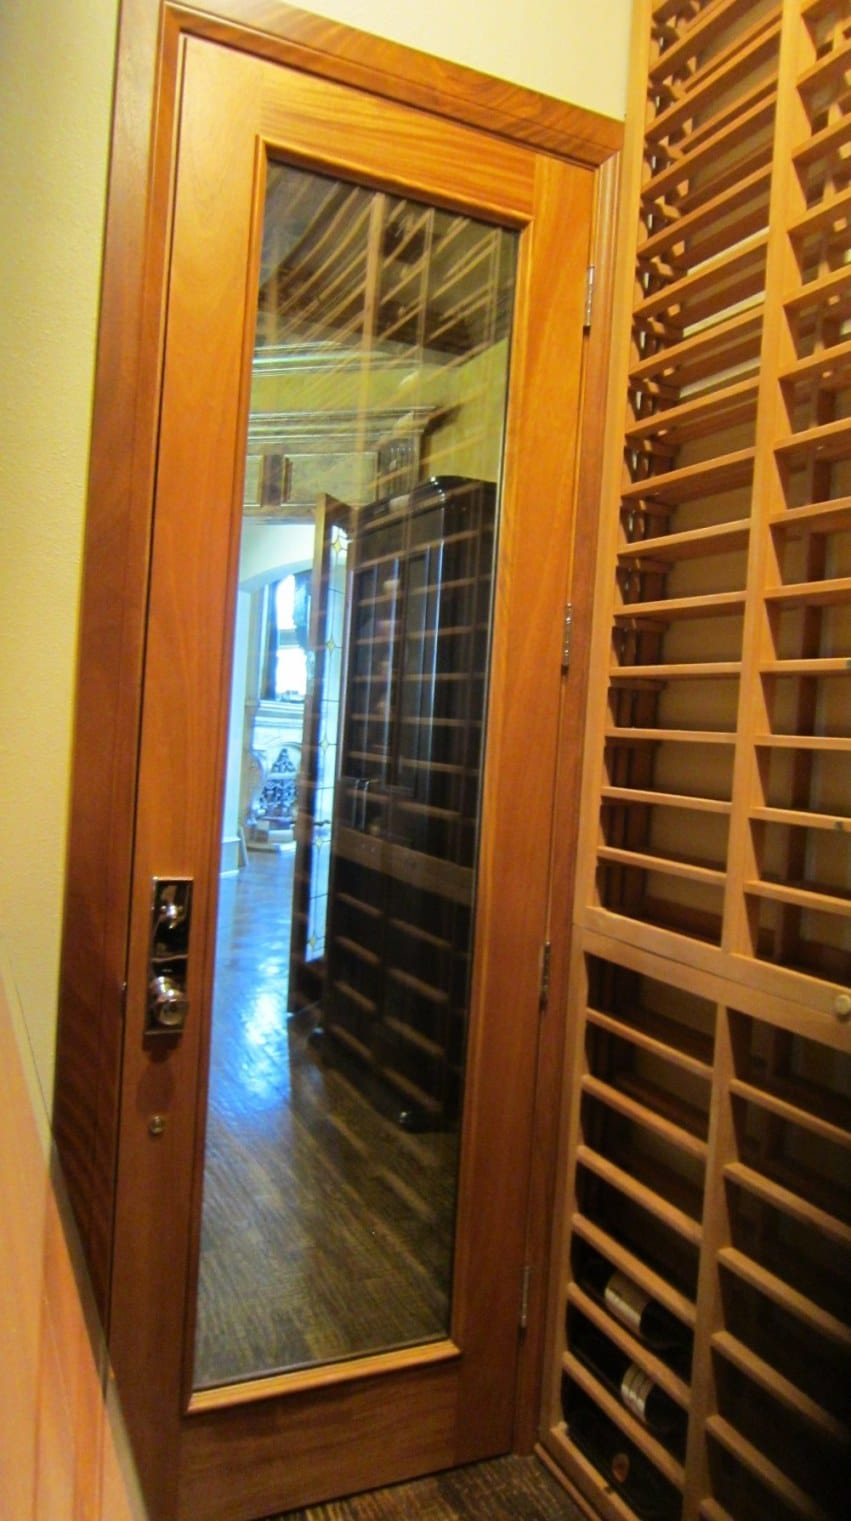 View of the Wine Cellar Door from Inside of Houston Wine Cellar